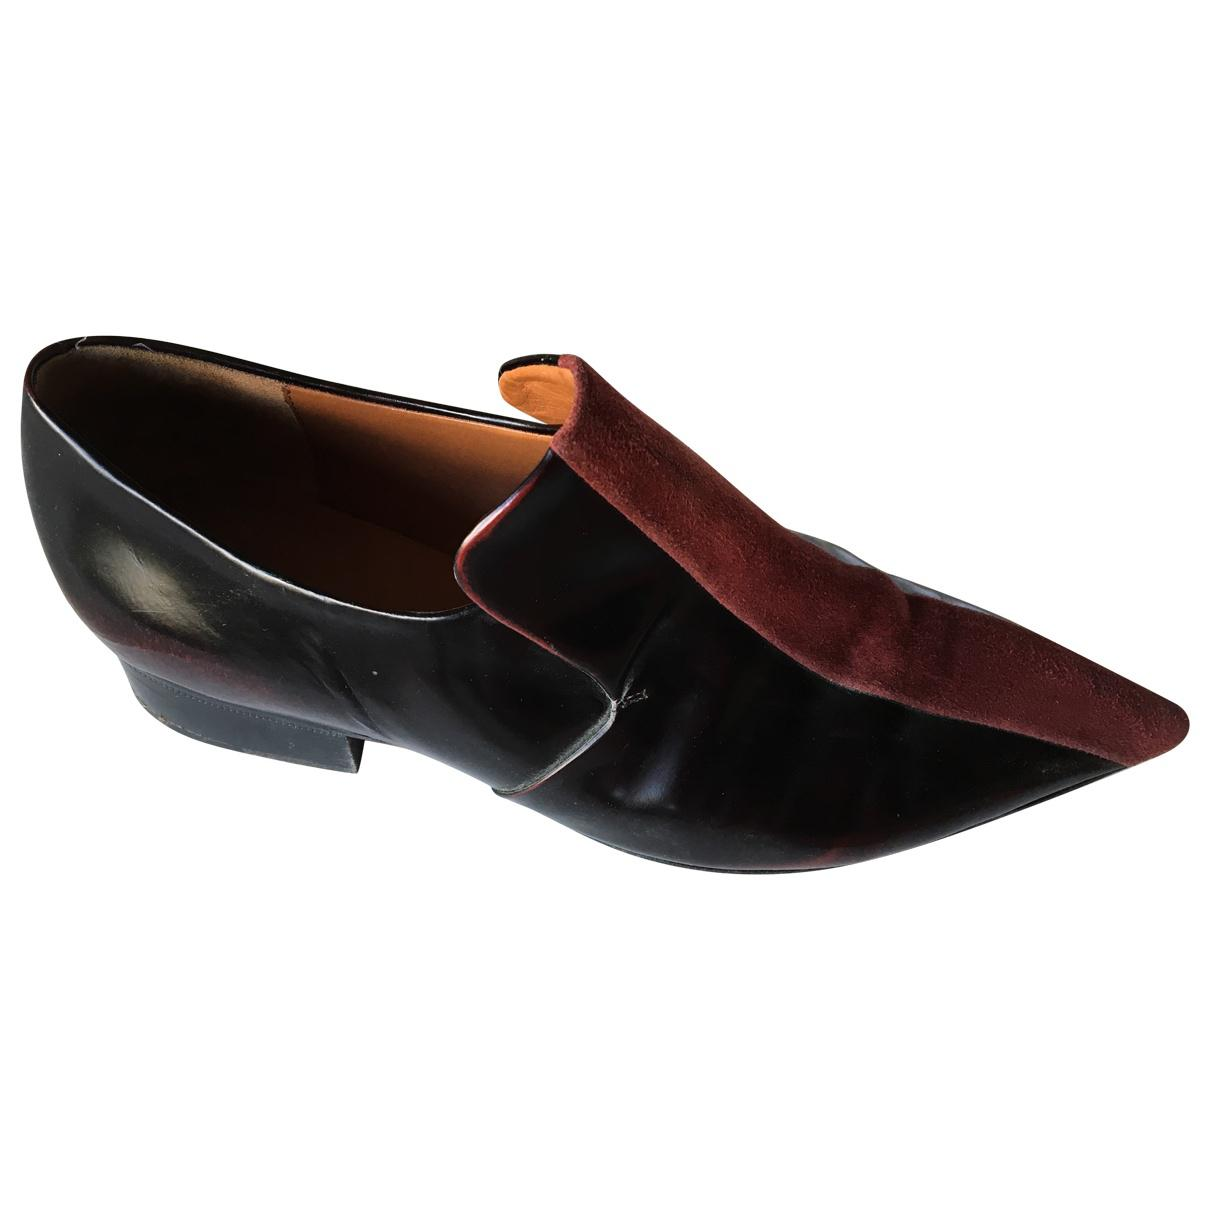 Pre-owned - Patent leather flats Celine Sbg6Arn